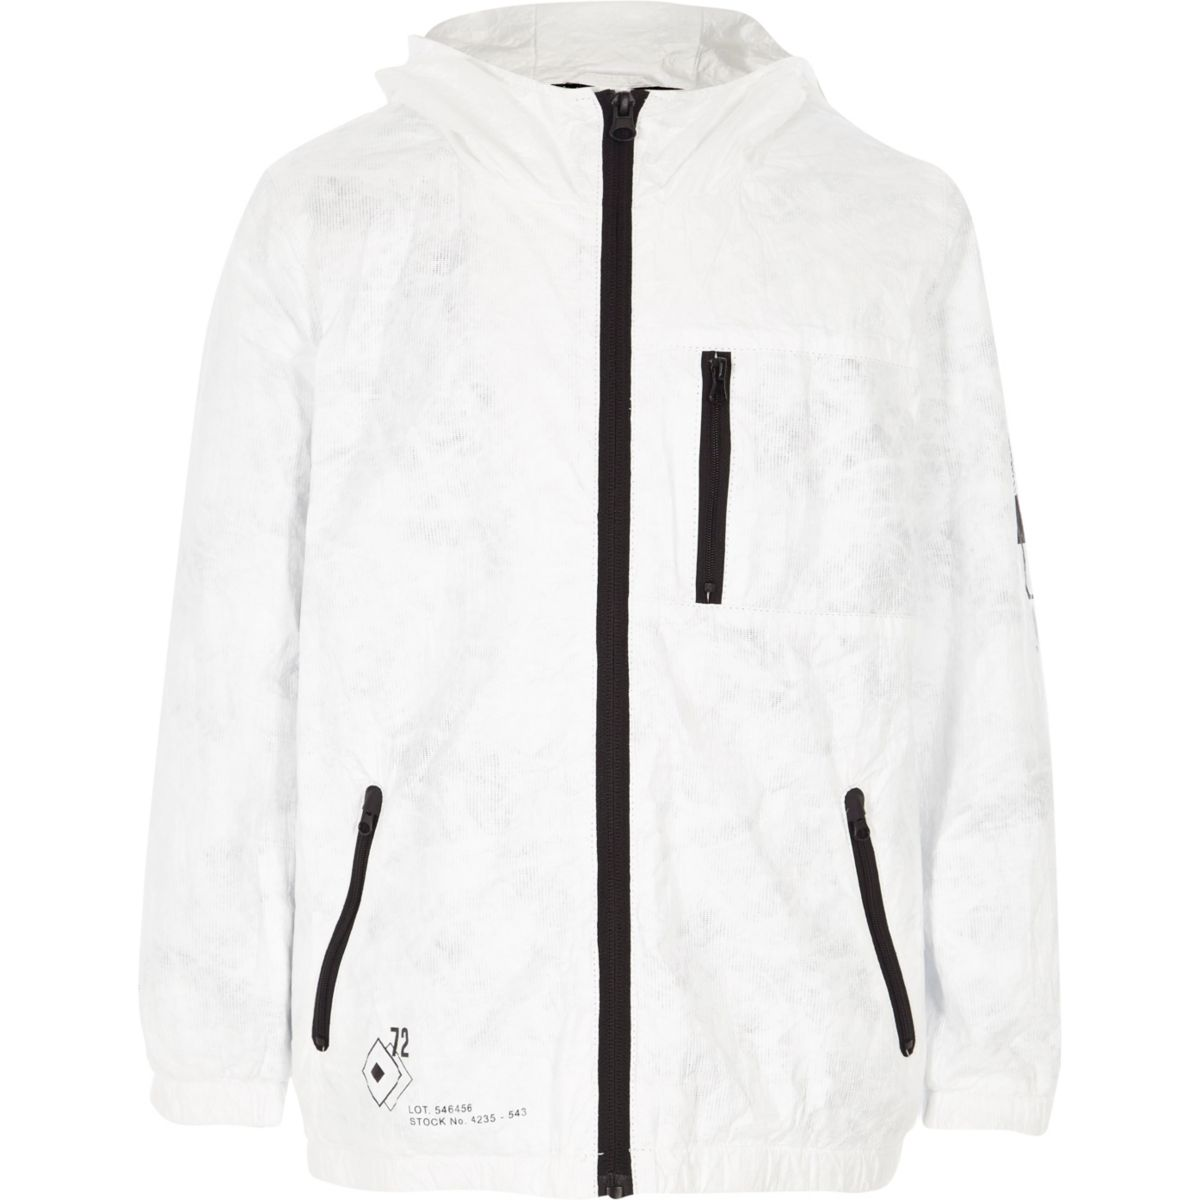 Boys white lightweight hooded jacket